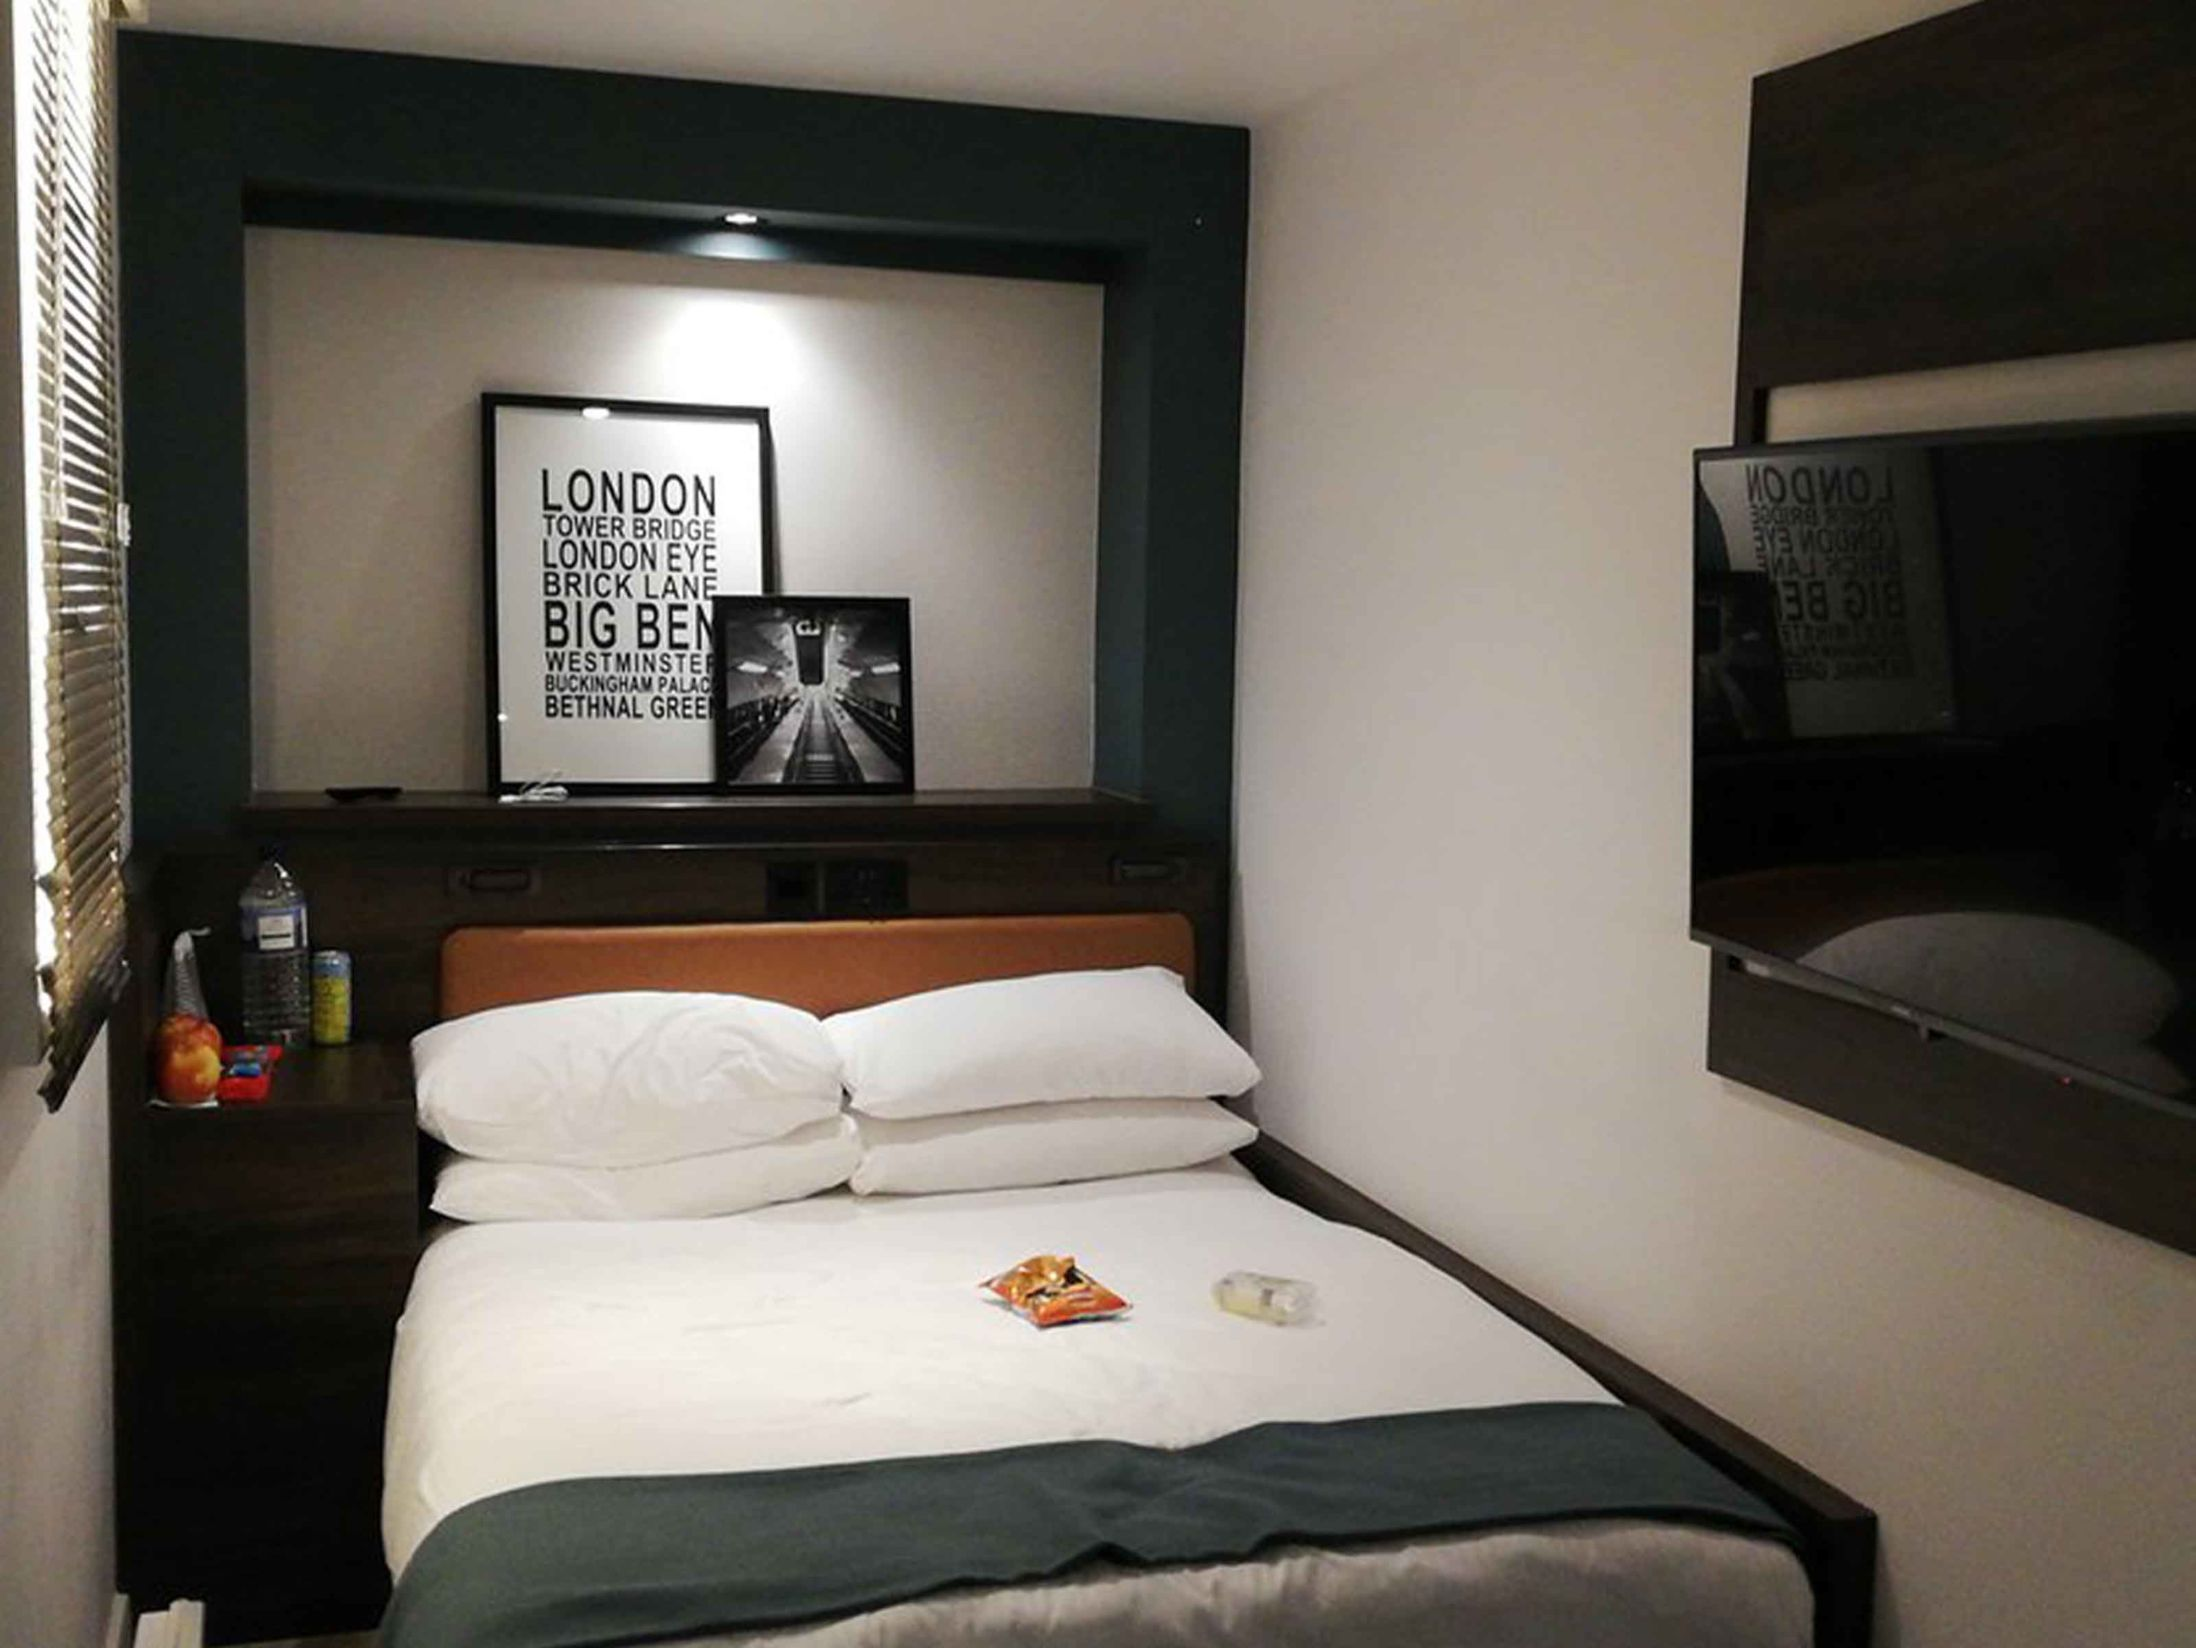 Cheap Hotels in London - The East London Hotel